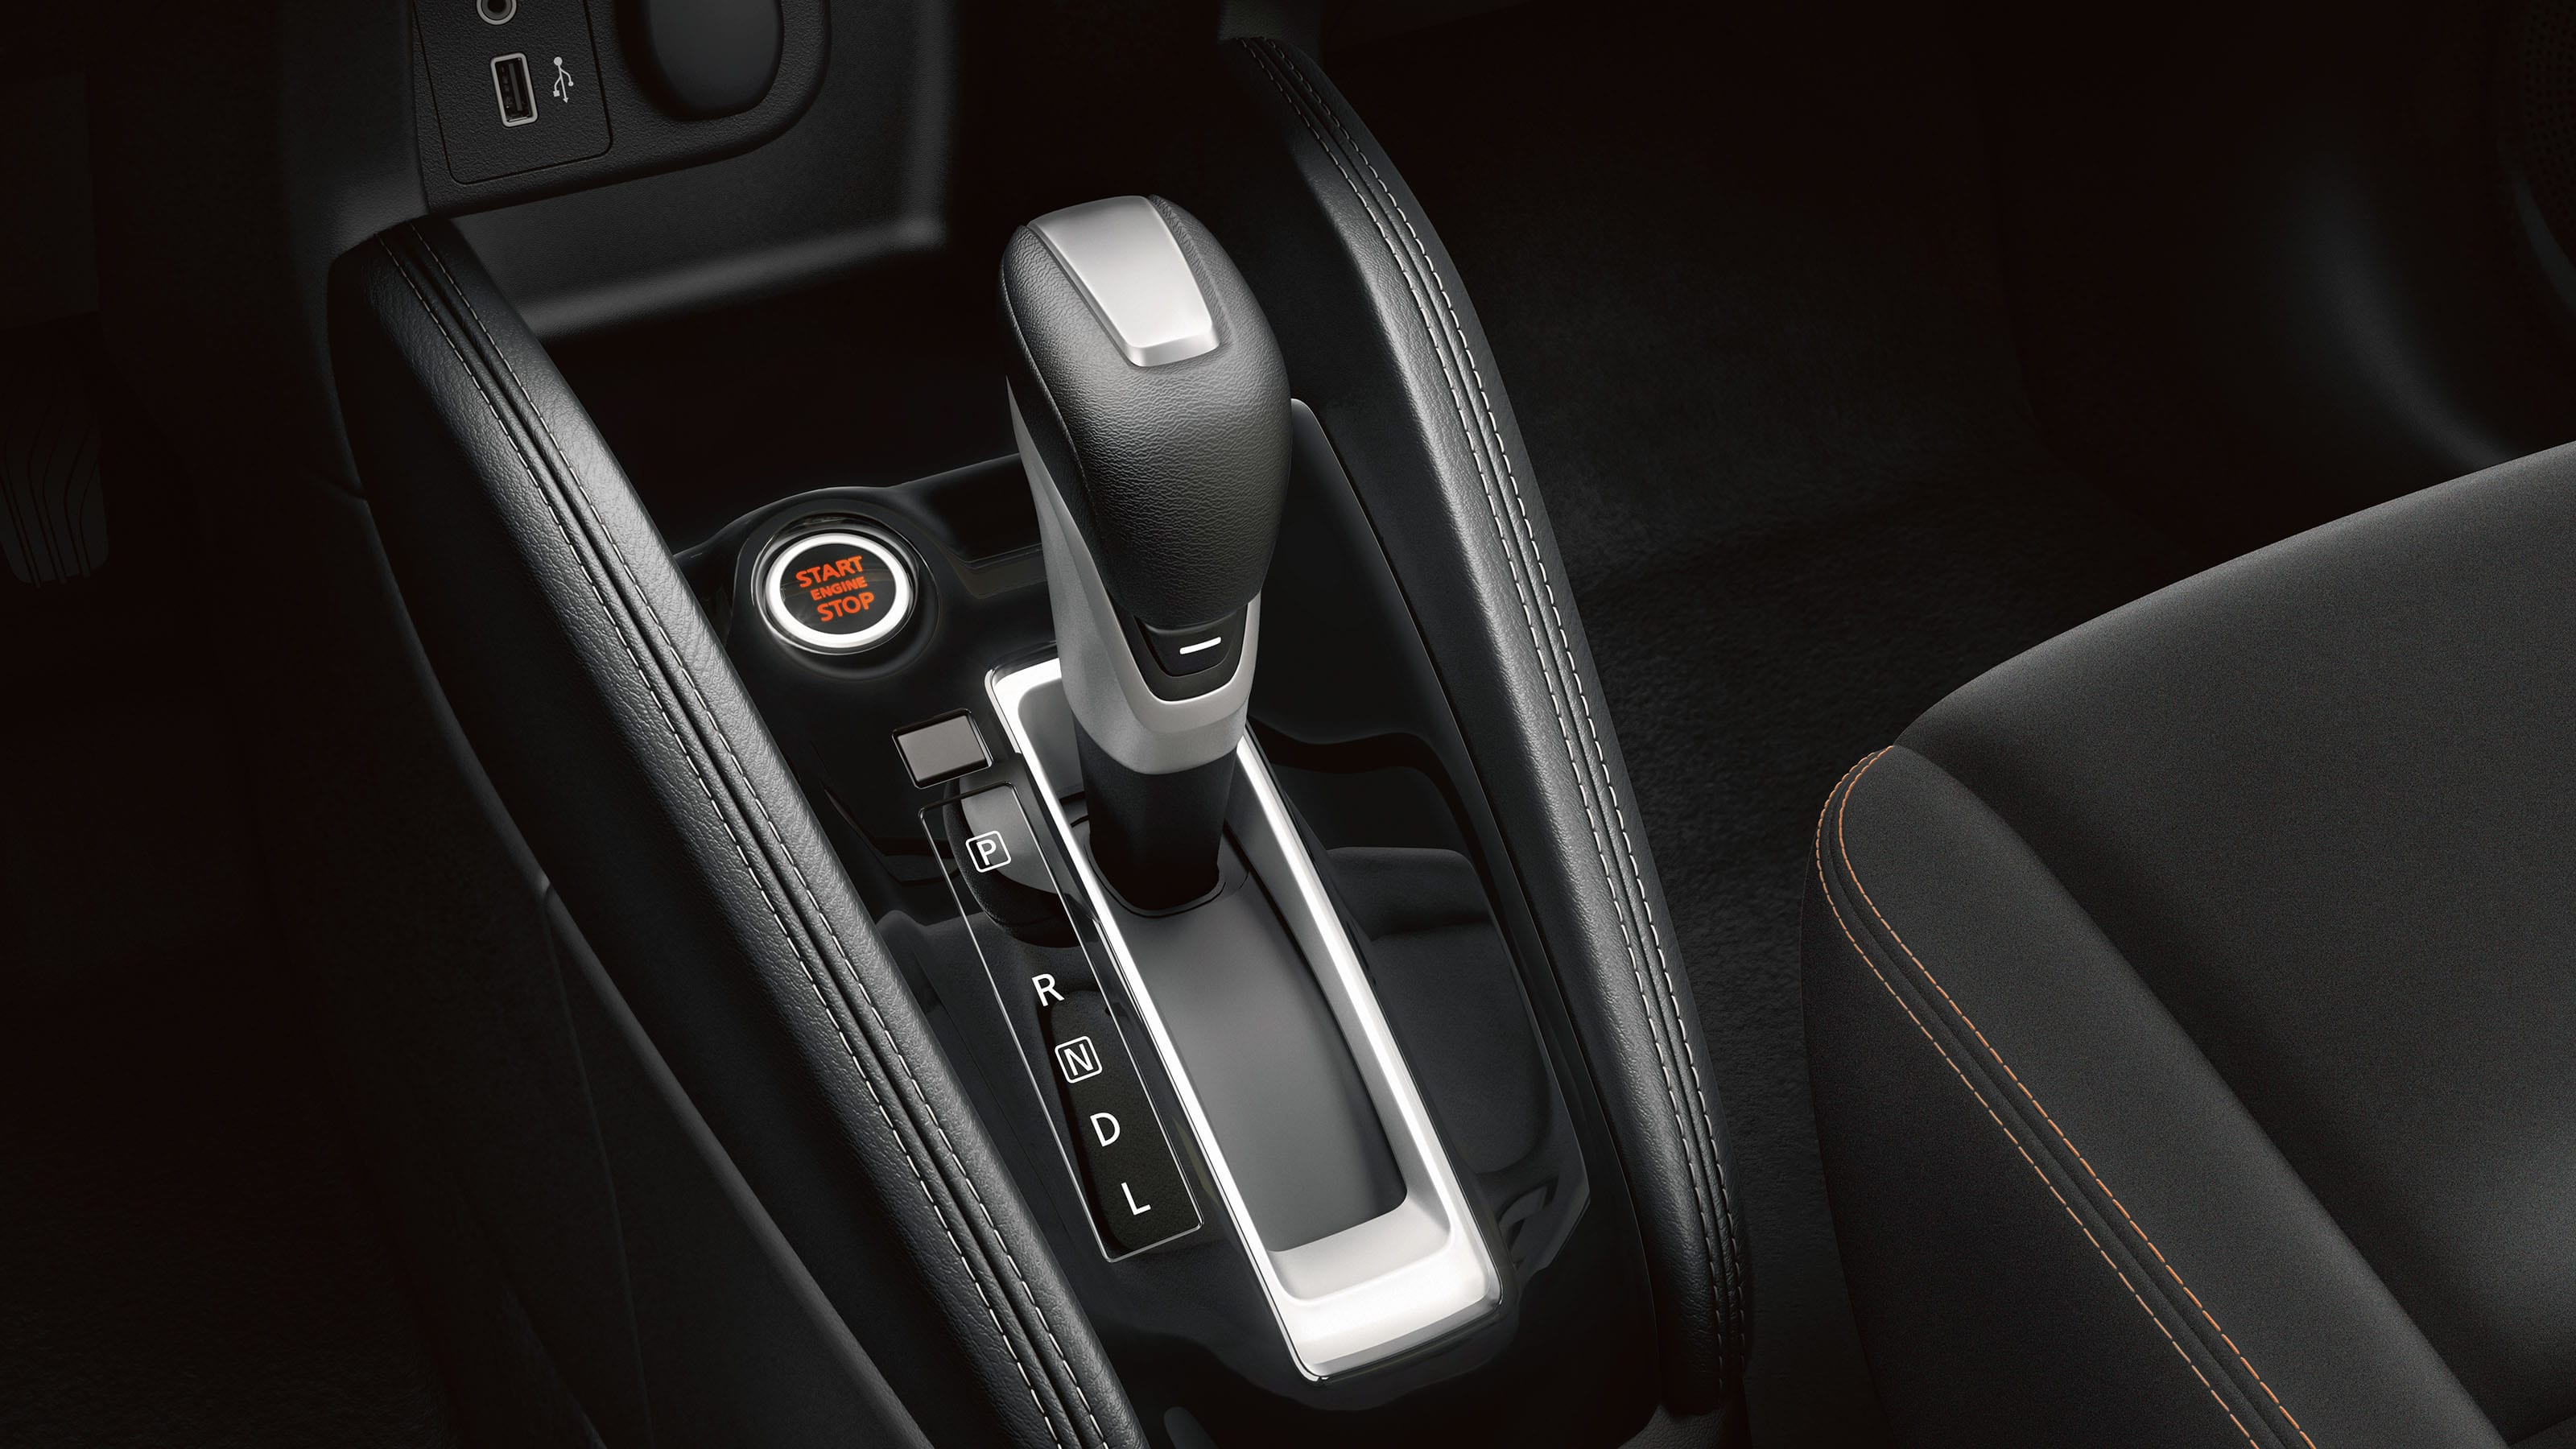 Gear Shift in the 2019 Nissan Kicks